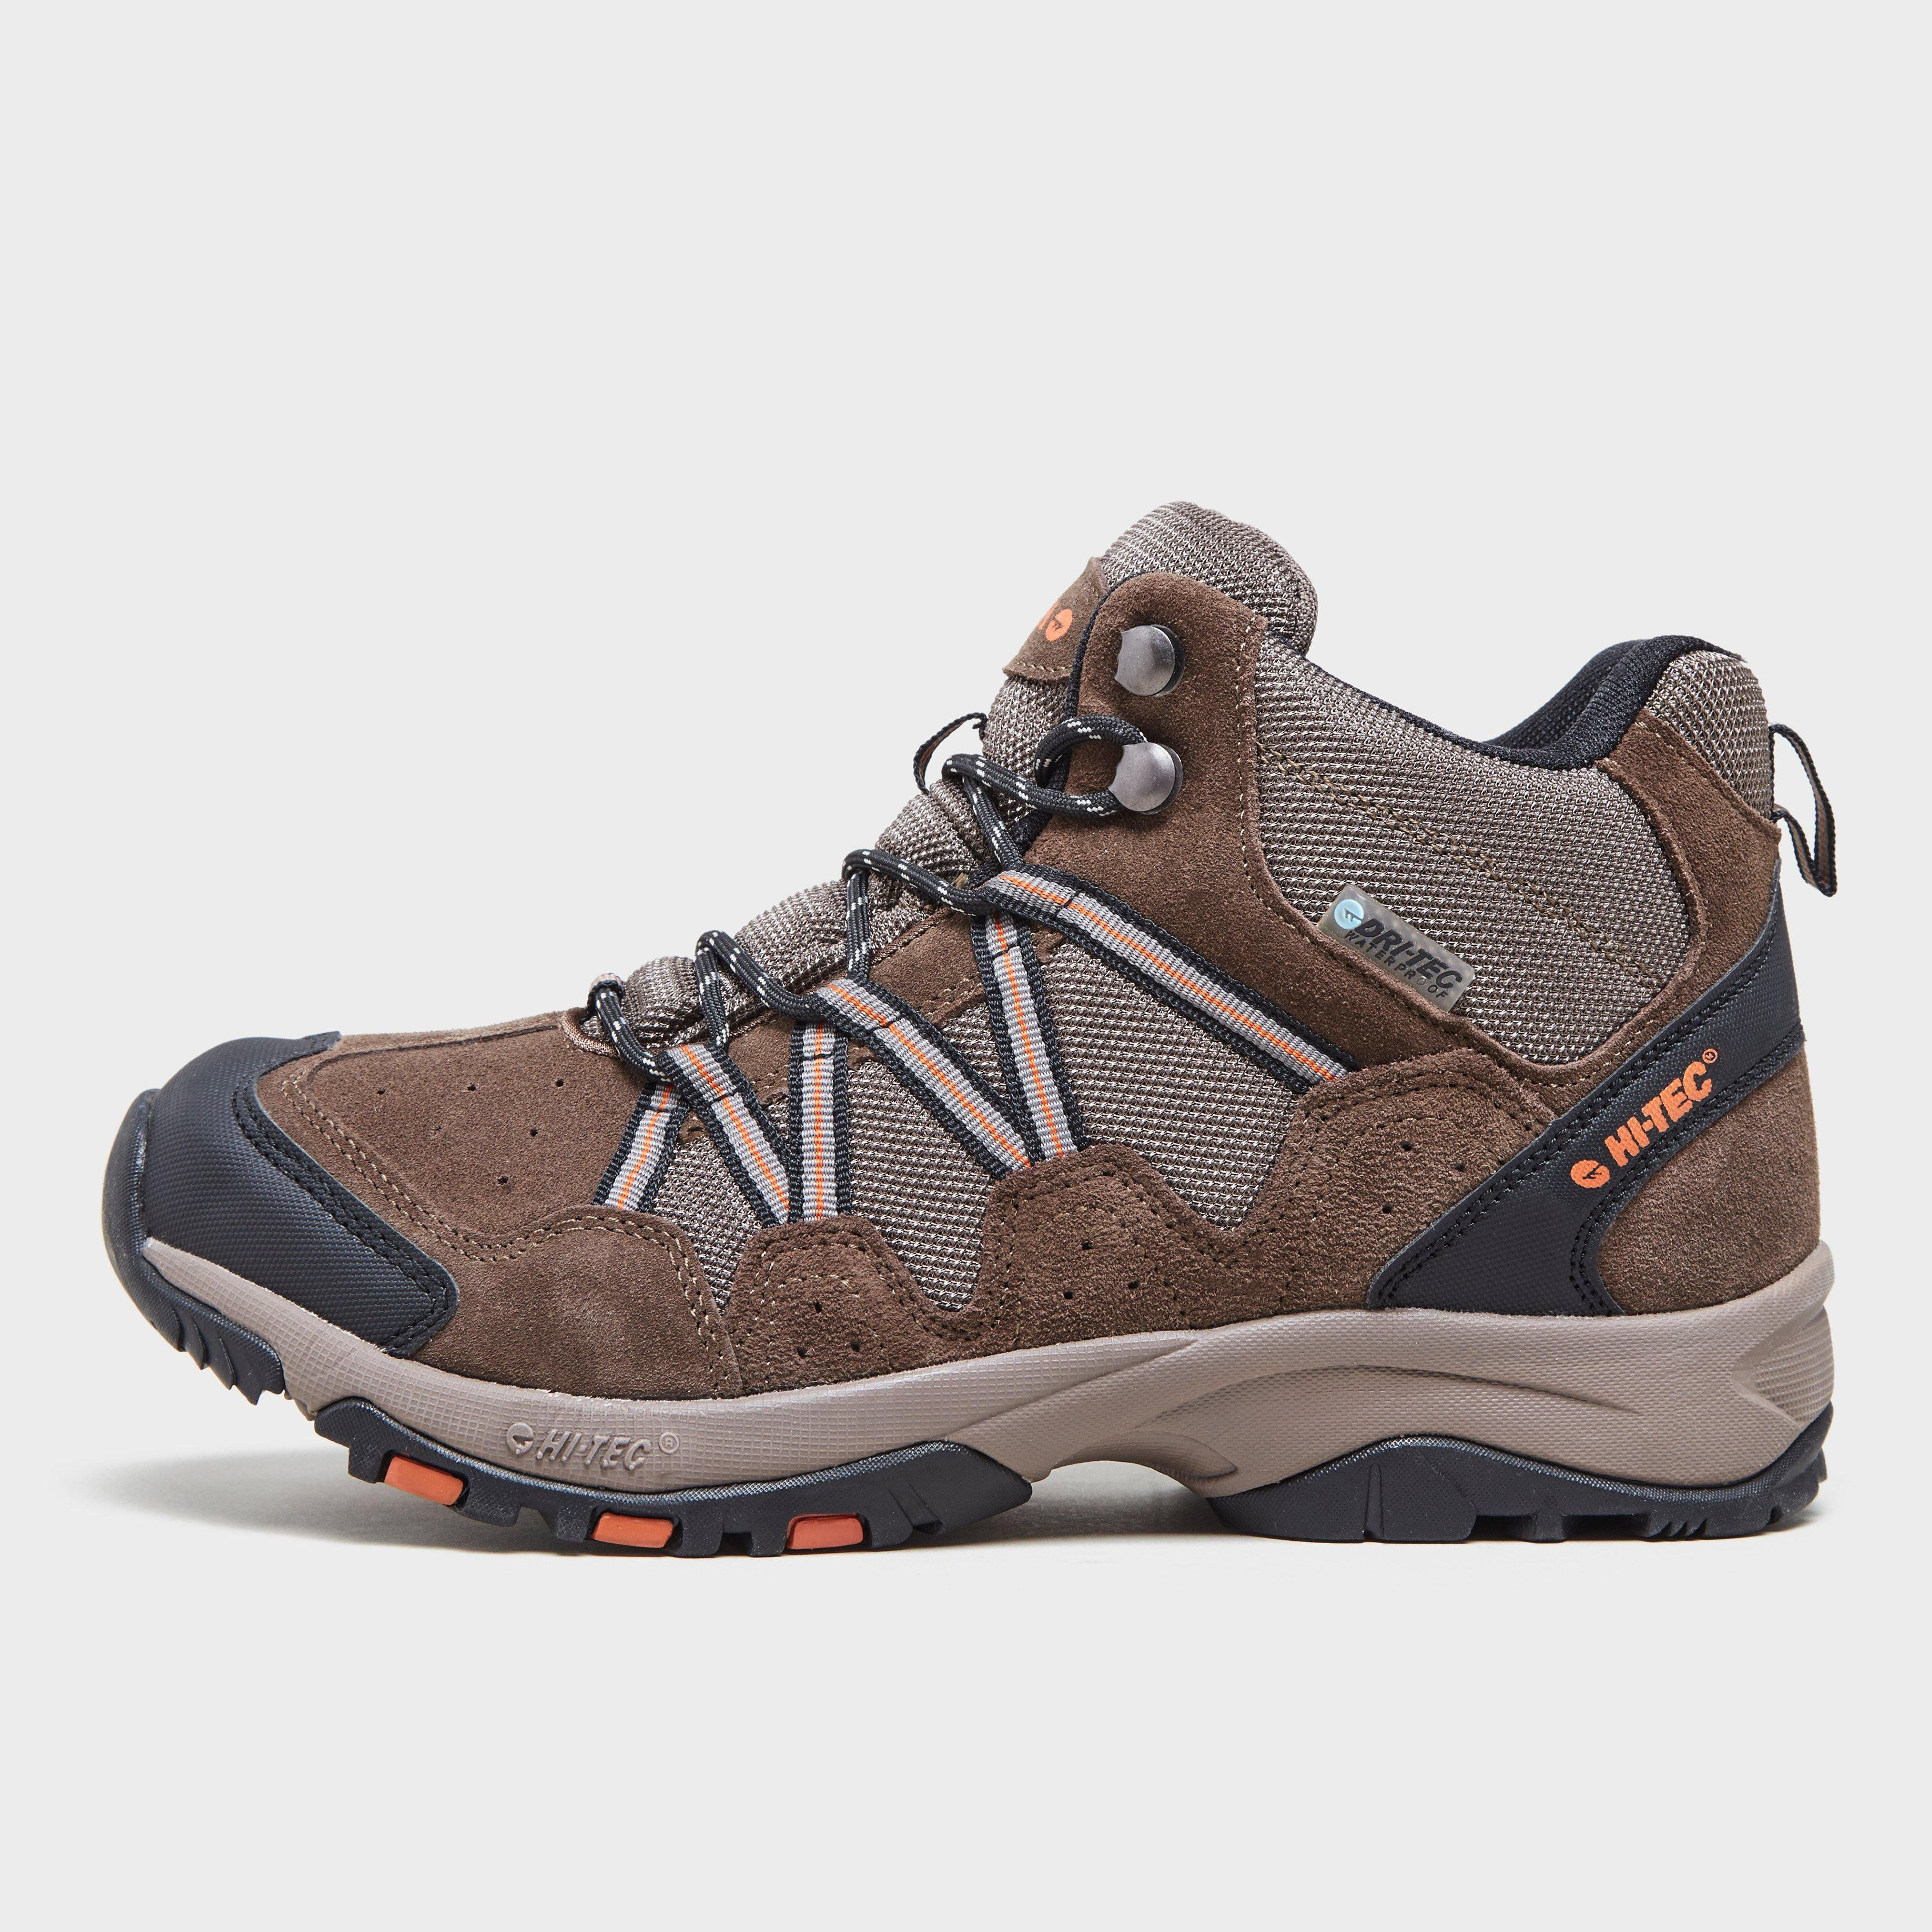 HI TEC Dexter Waterproof Mid Hiking Shoe